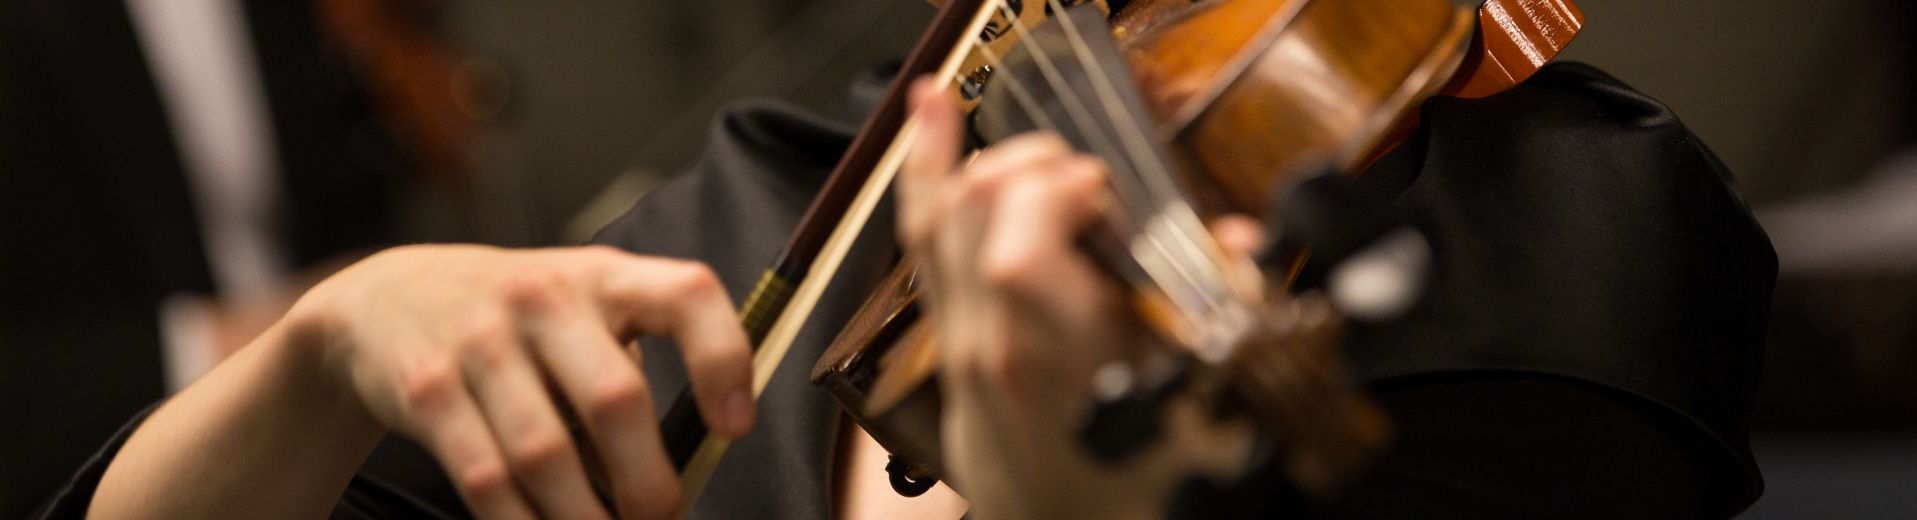 Close up shot of person's hands playing viola